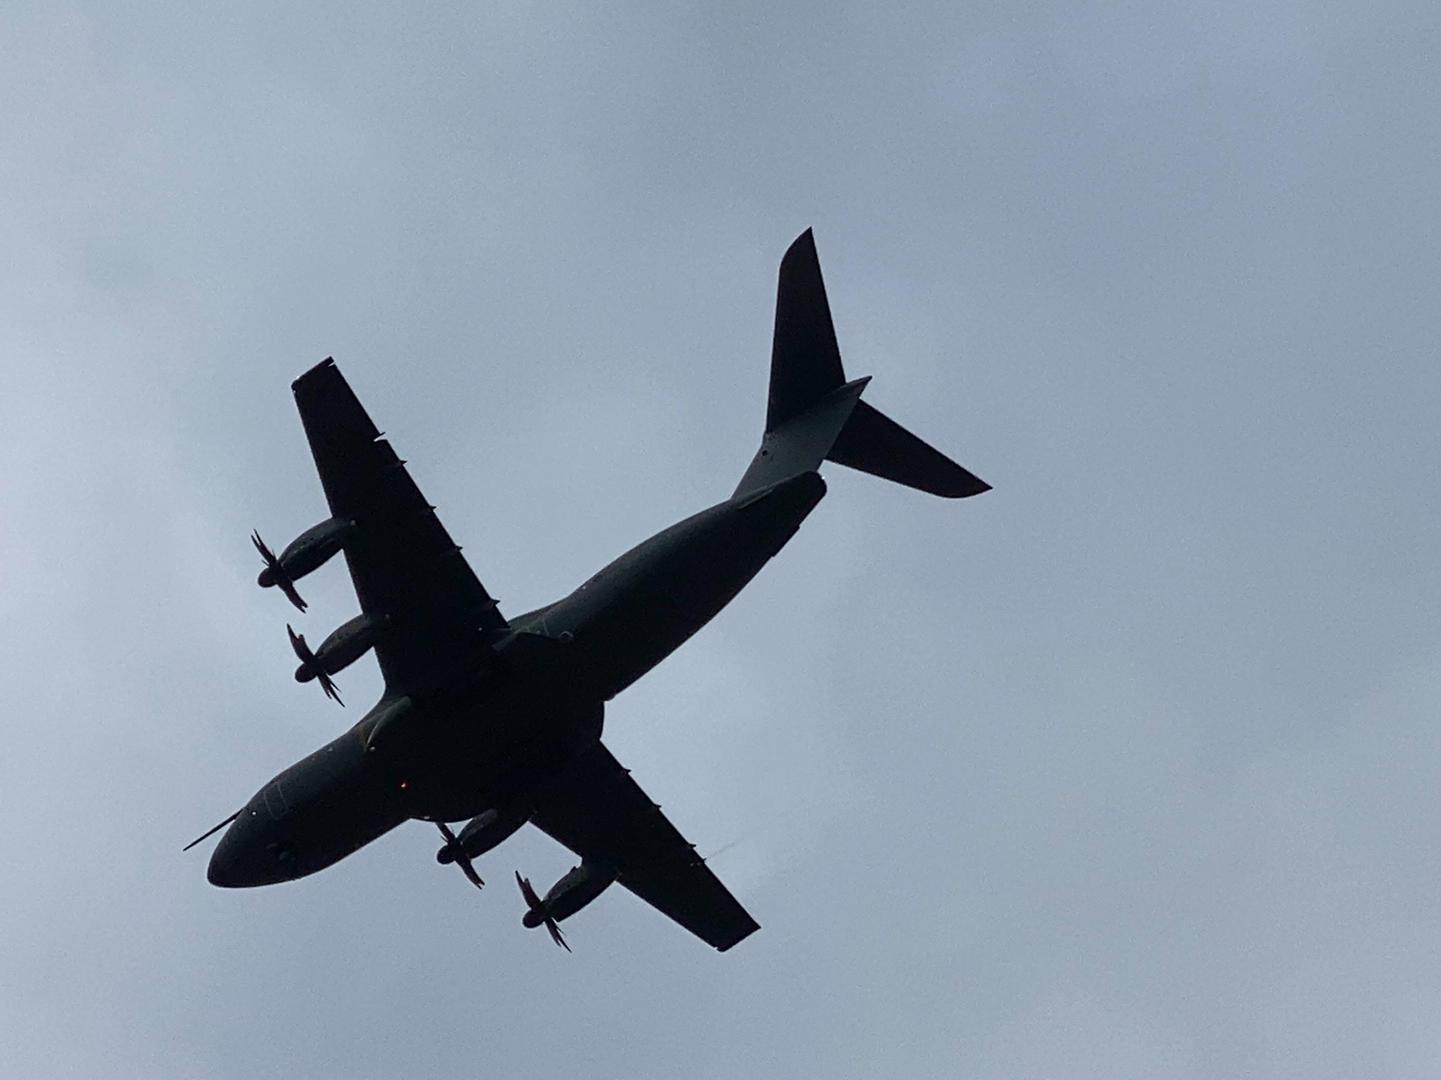 This is why a huge military plane was spotted flying low over Leeds today